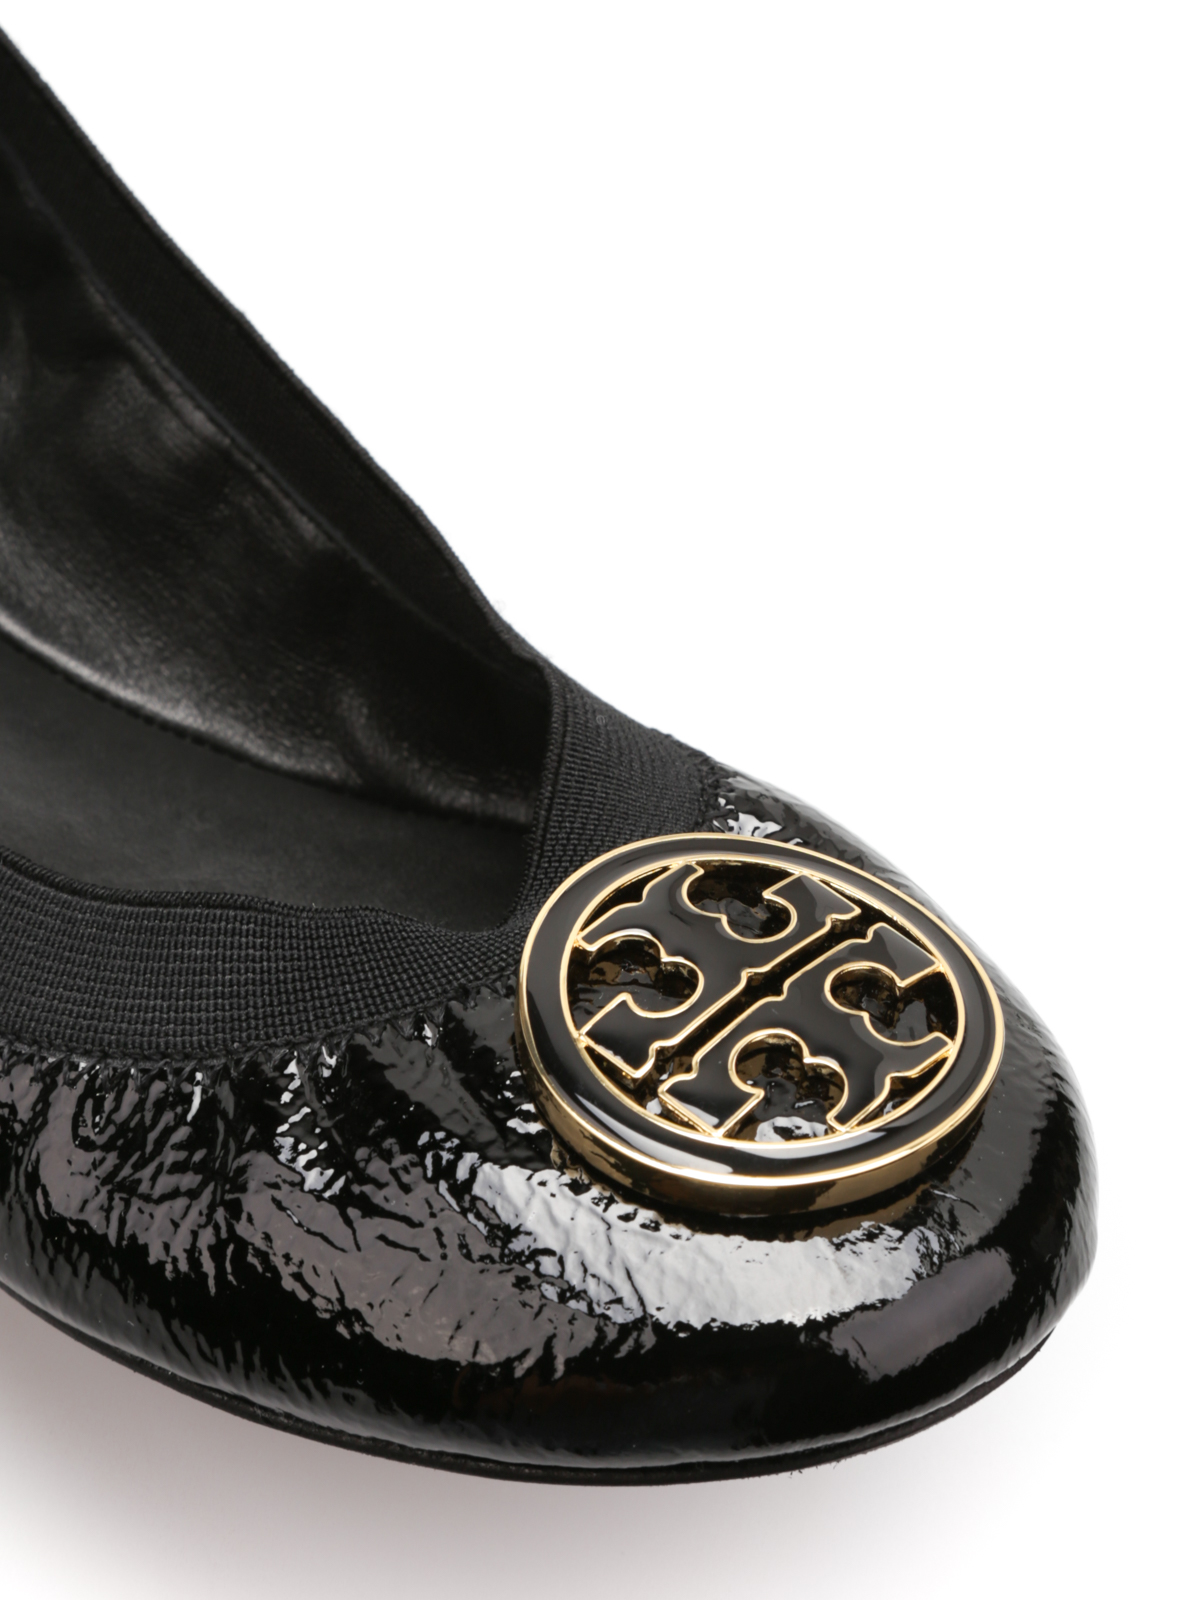 Tory Burch Caroline Naplak Flats Flat Shoes 50008664